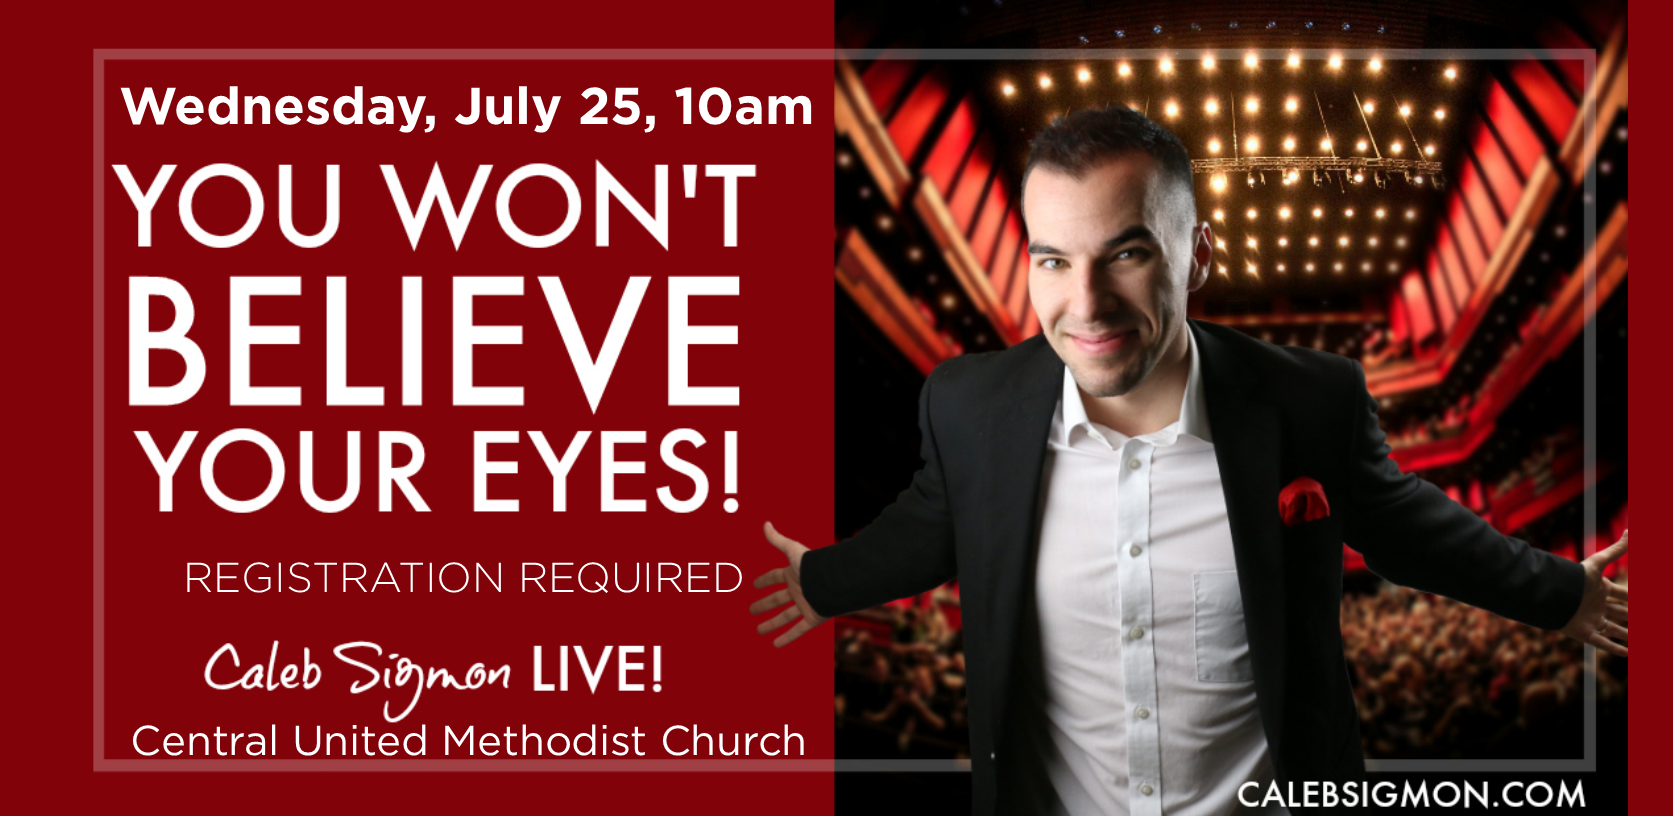 You Won't Believe Your Eyes! Caleb Sigmon LIVE